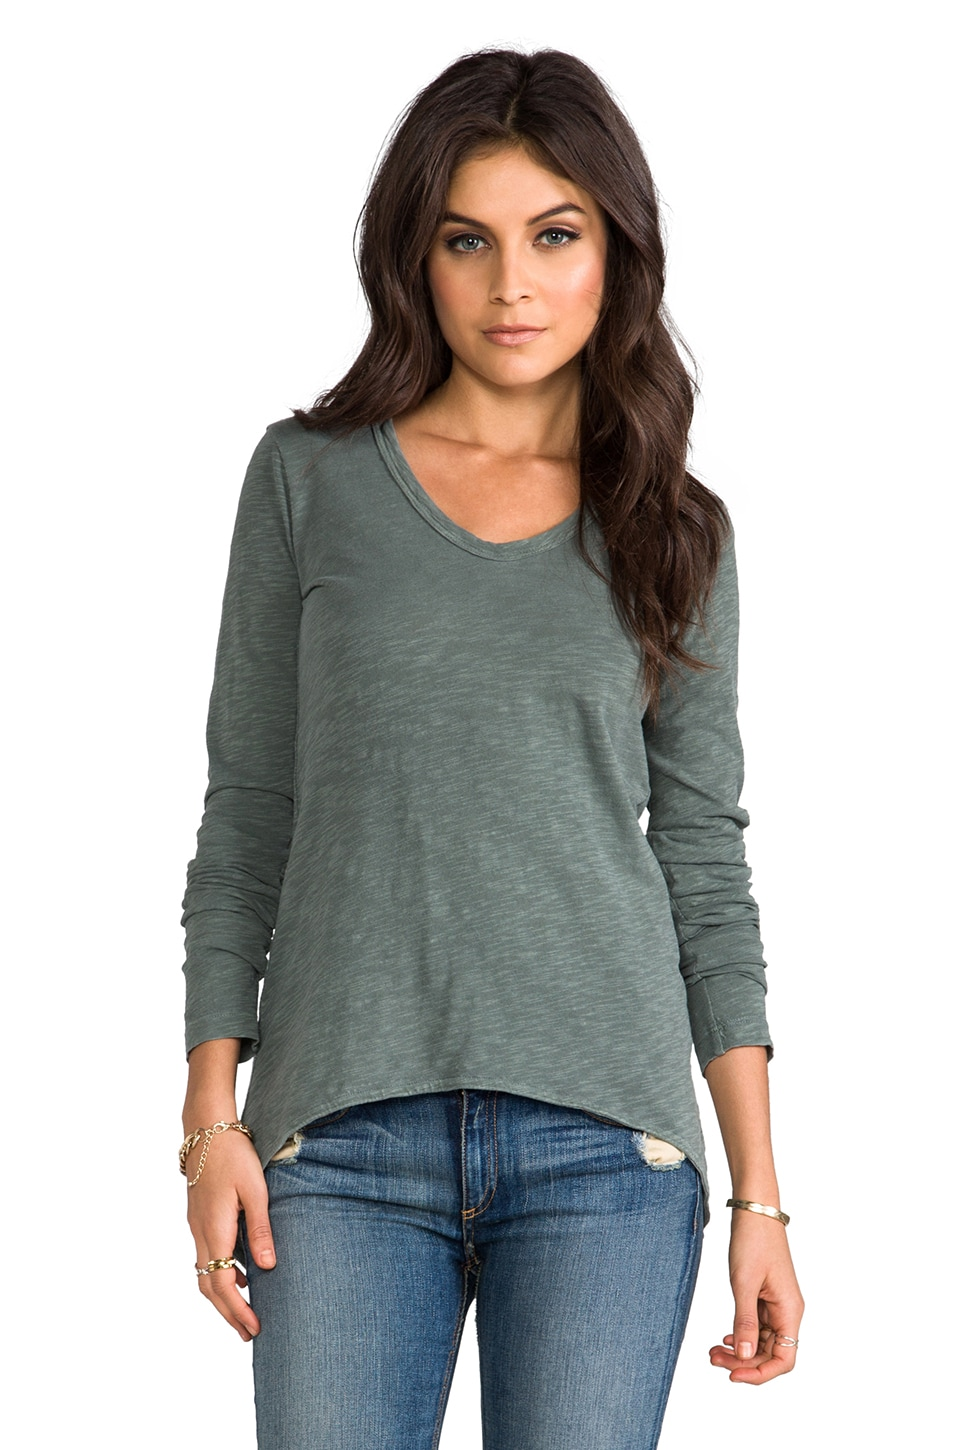 Wilt Slub Long Sleeve Shrunken BF Tee in Clover